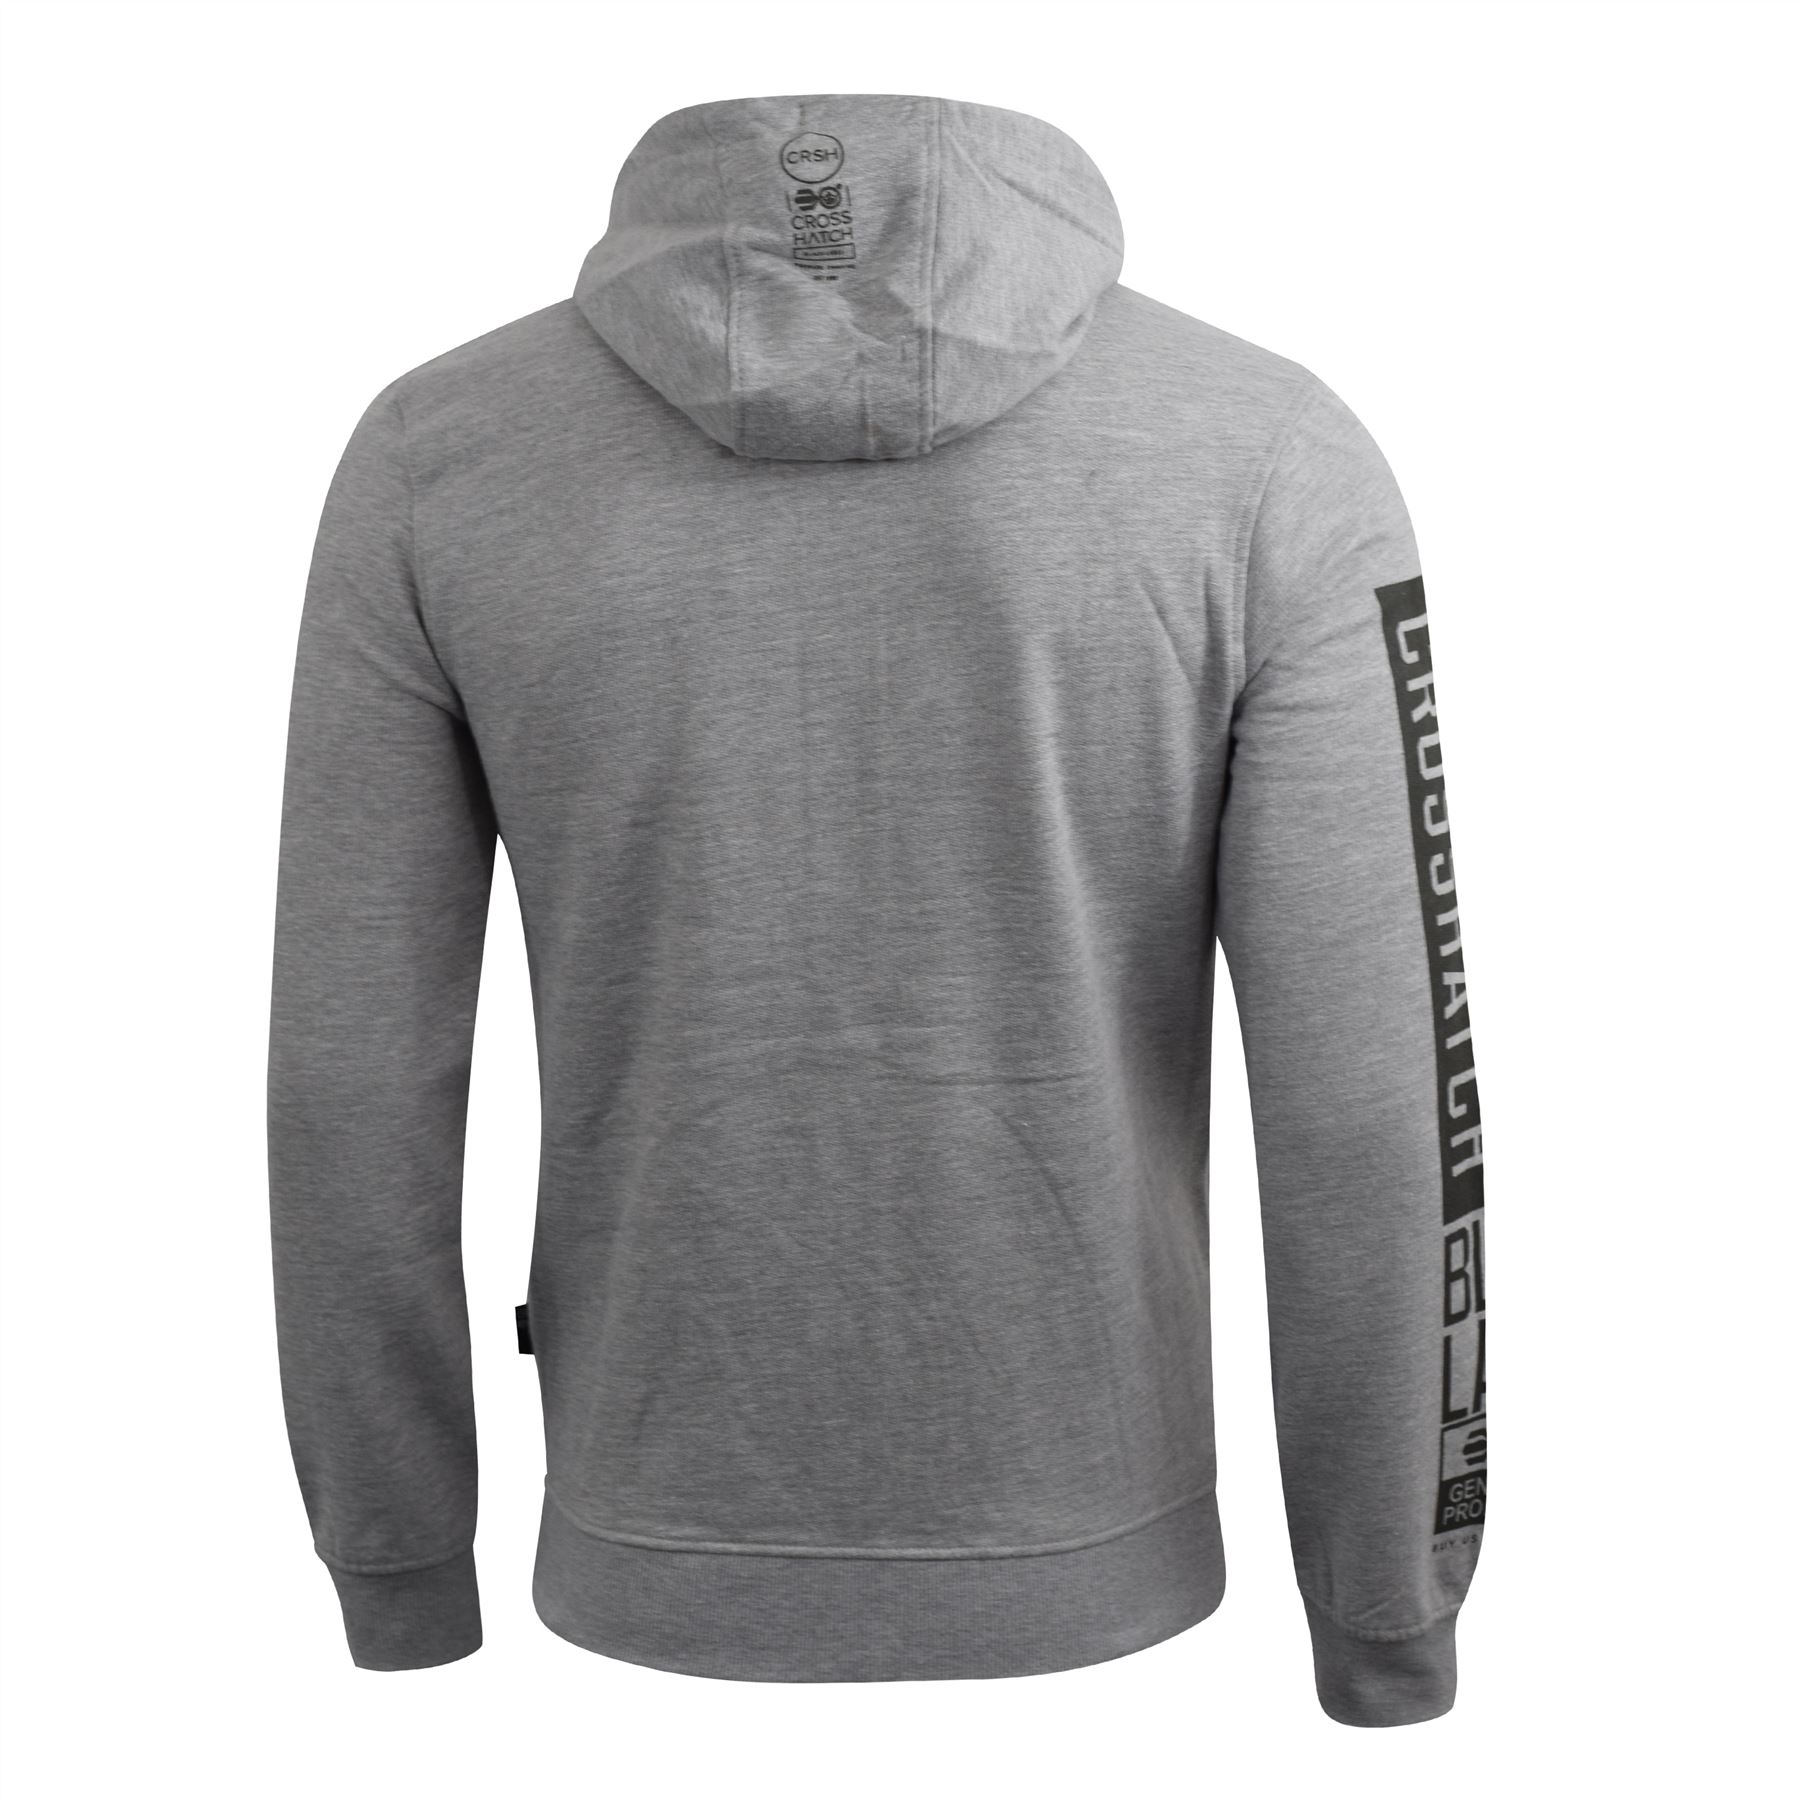 Mens-Crosshatch-Hoodie-Thrive-Full-Zip-Hoody-Pullover-Sweatshirt thumbnail 6